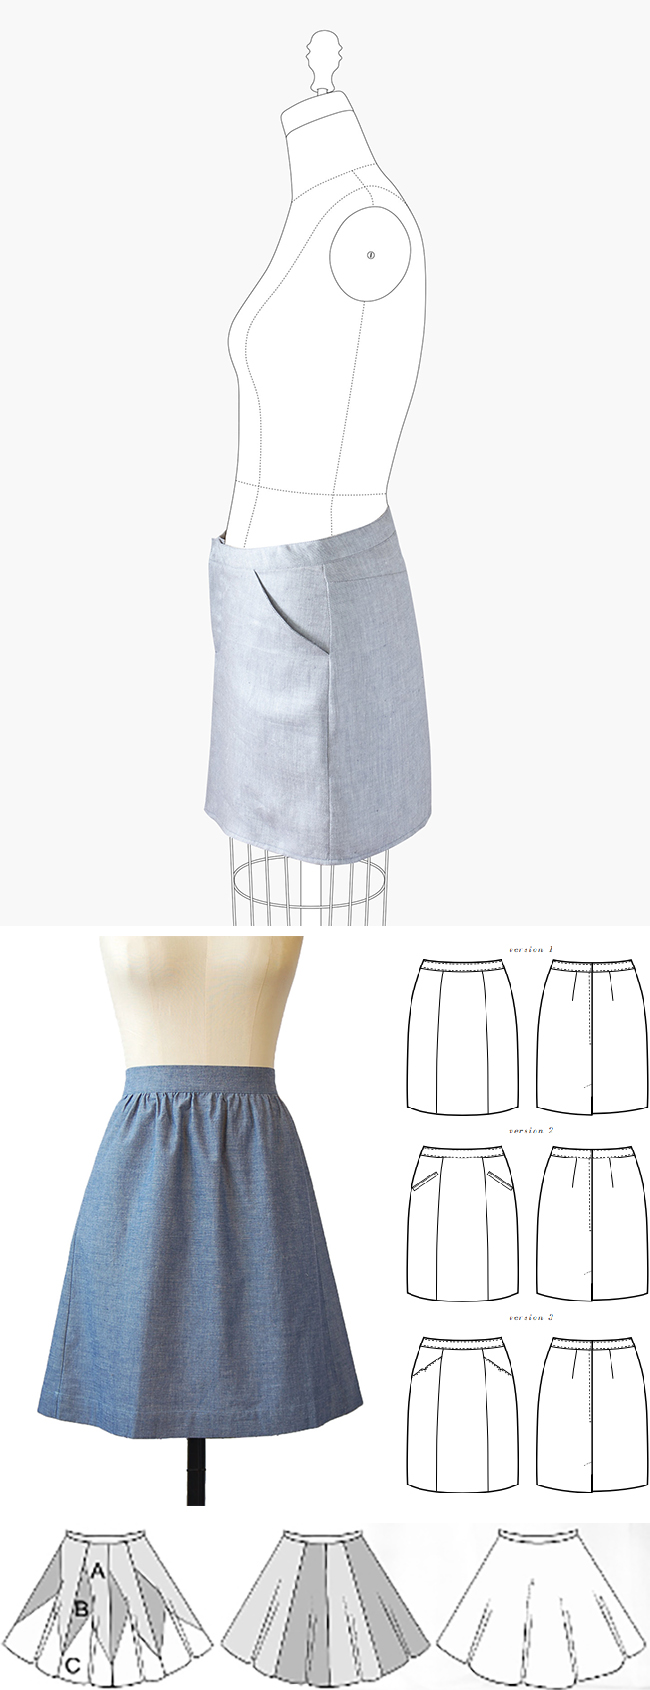 Make Your Own Basics: The skirt(s)